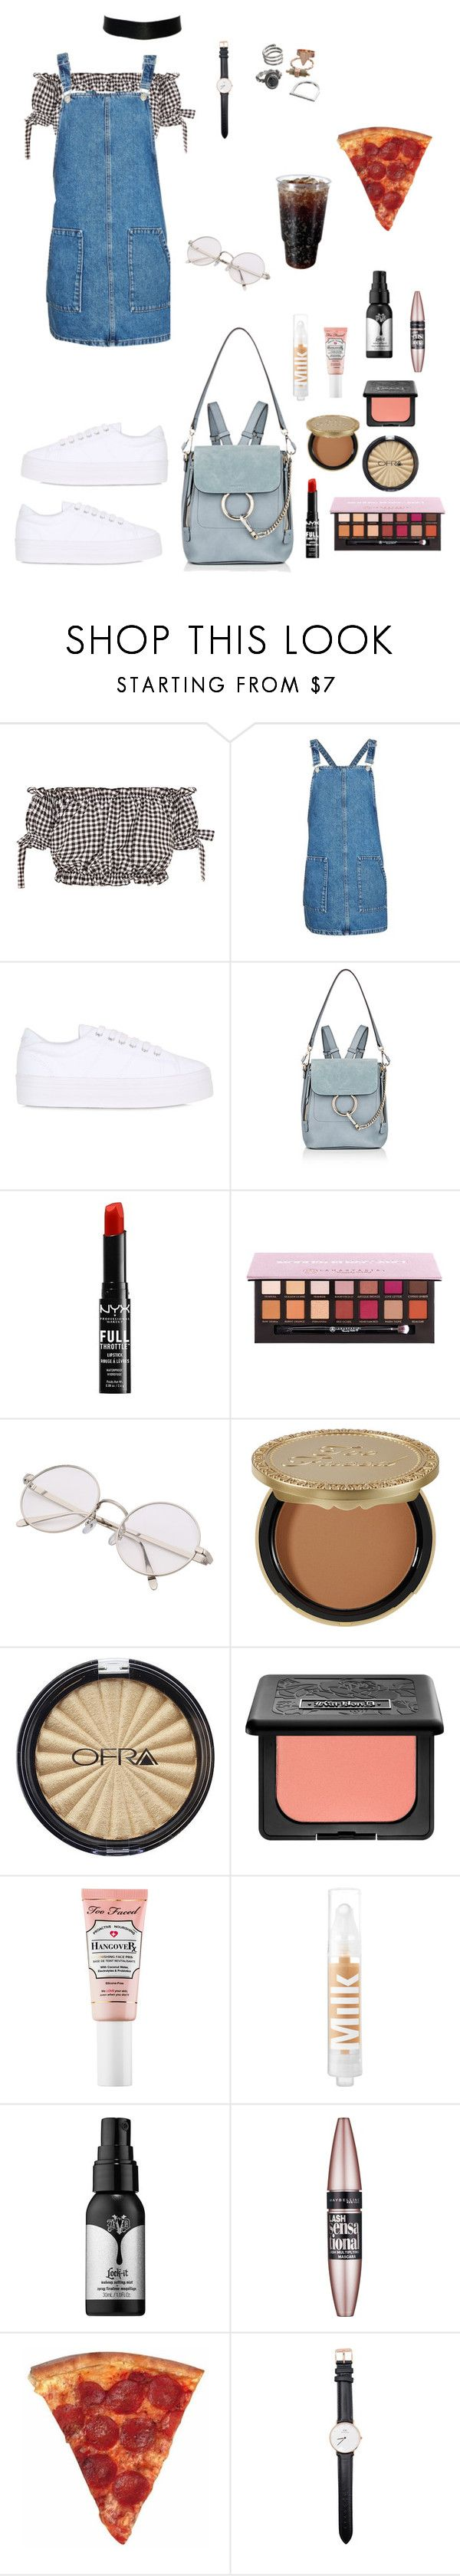 """We ride with pizza"" by shellygeigel ❤ liked on Polyvore featuring Topshop, No Name, Chloé, NYX, Anastasia Beverly Hills, Too Faced Cosmetics, ULTA, Kat Von D, Maybelline and Daniel Wellington"